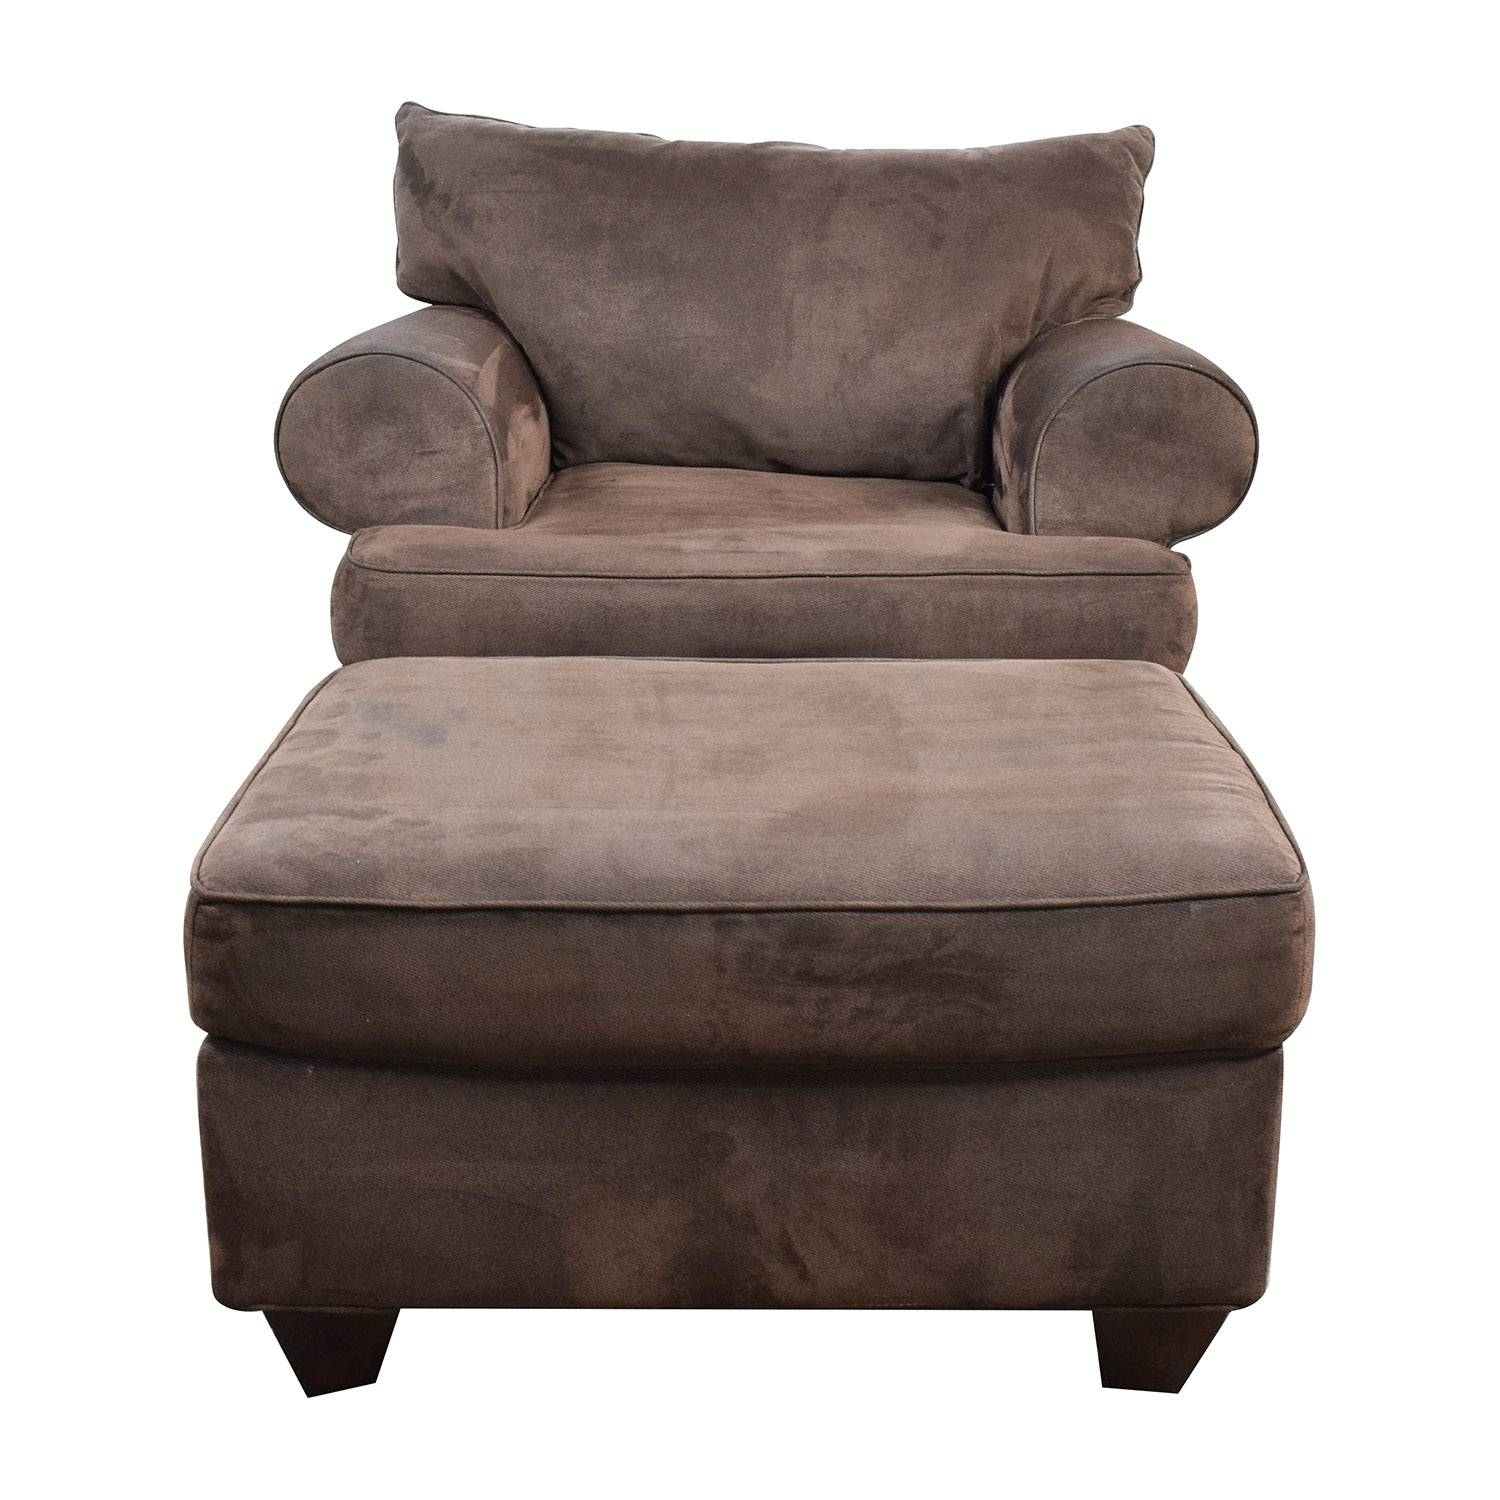 67% Off – Dark Brown Sofa Chair With Ottoman / Chairs With Regard To Sofa Chairs (Gallery 3 of 30)